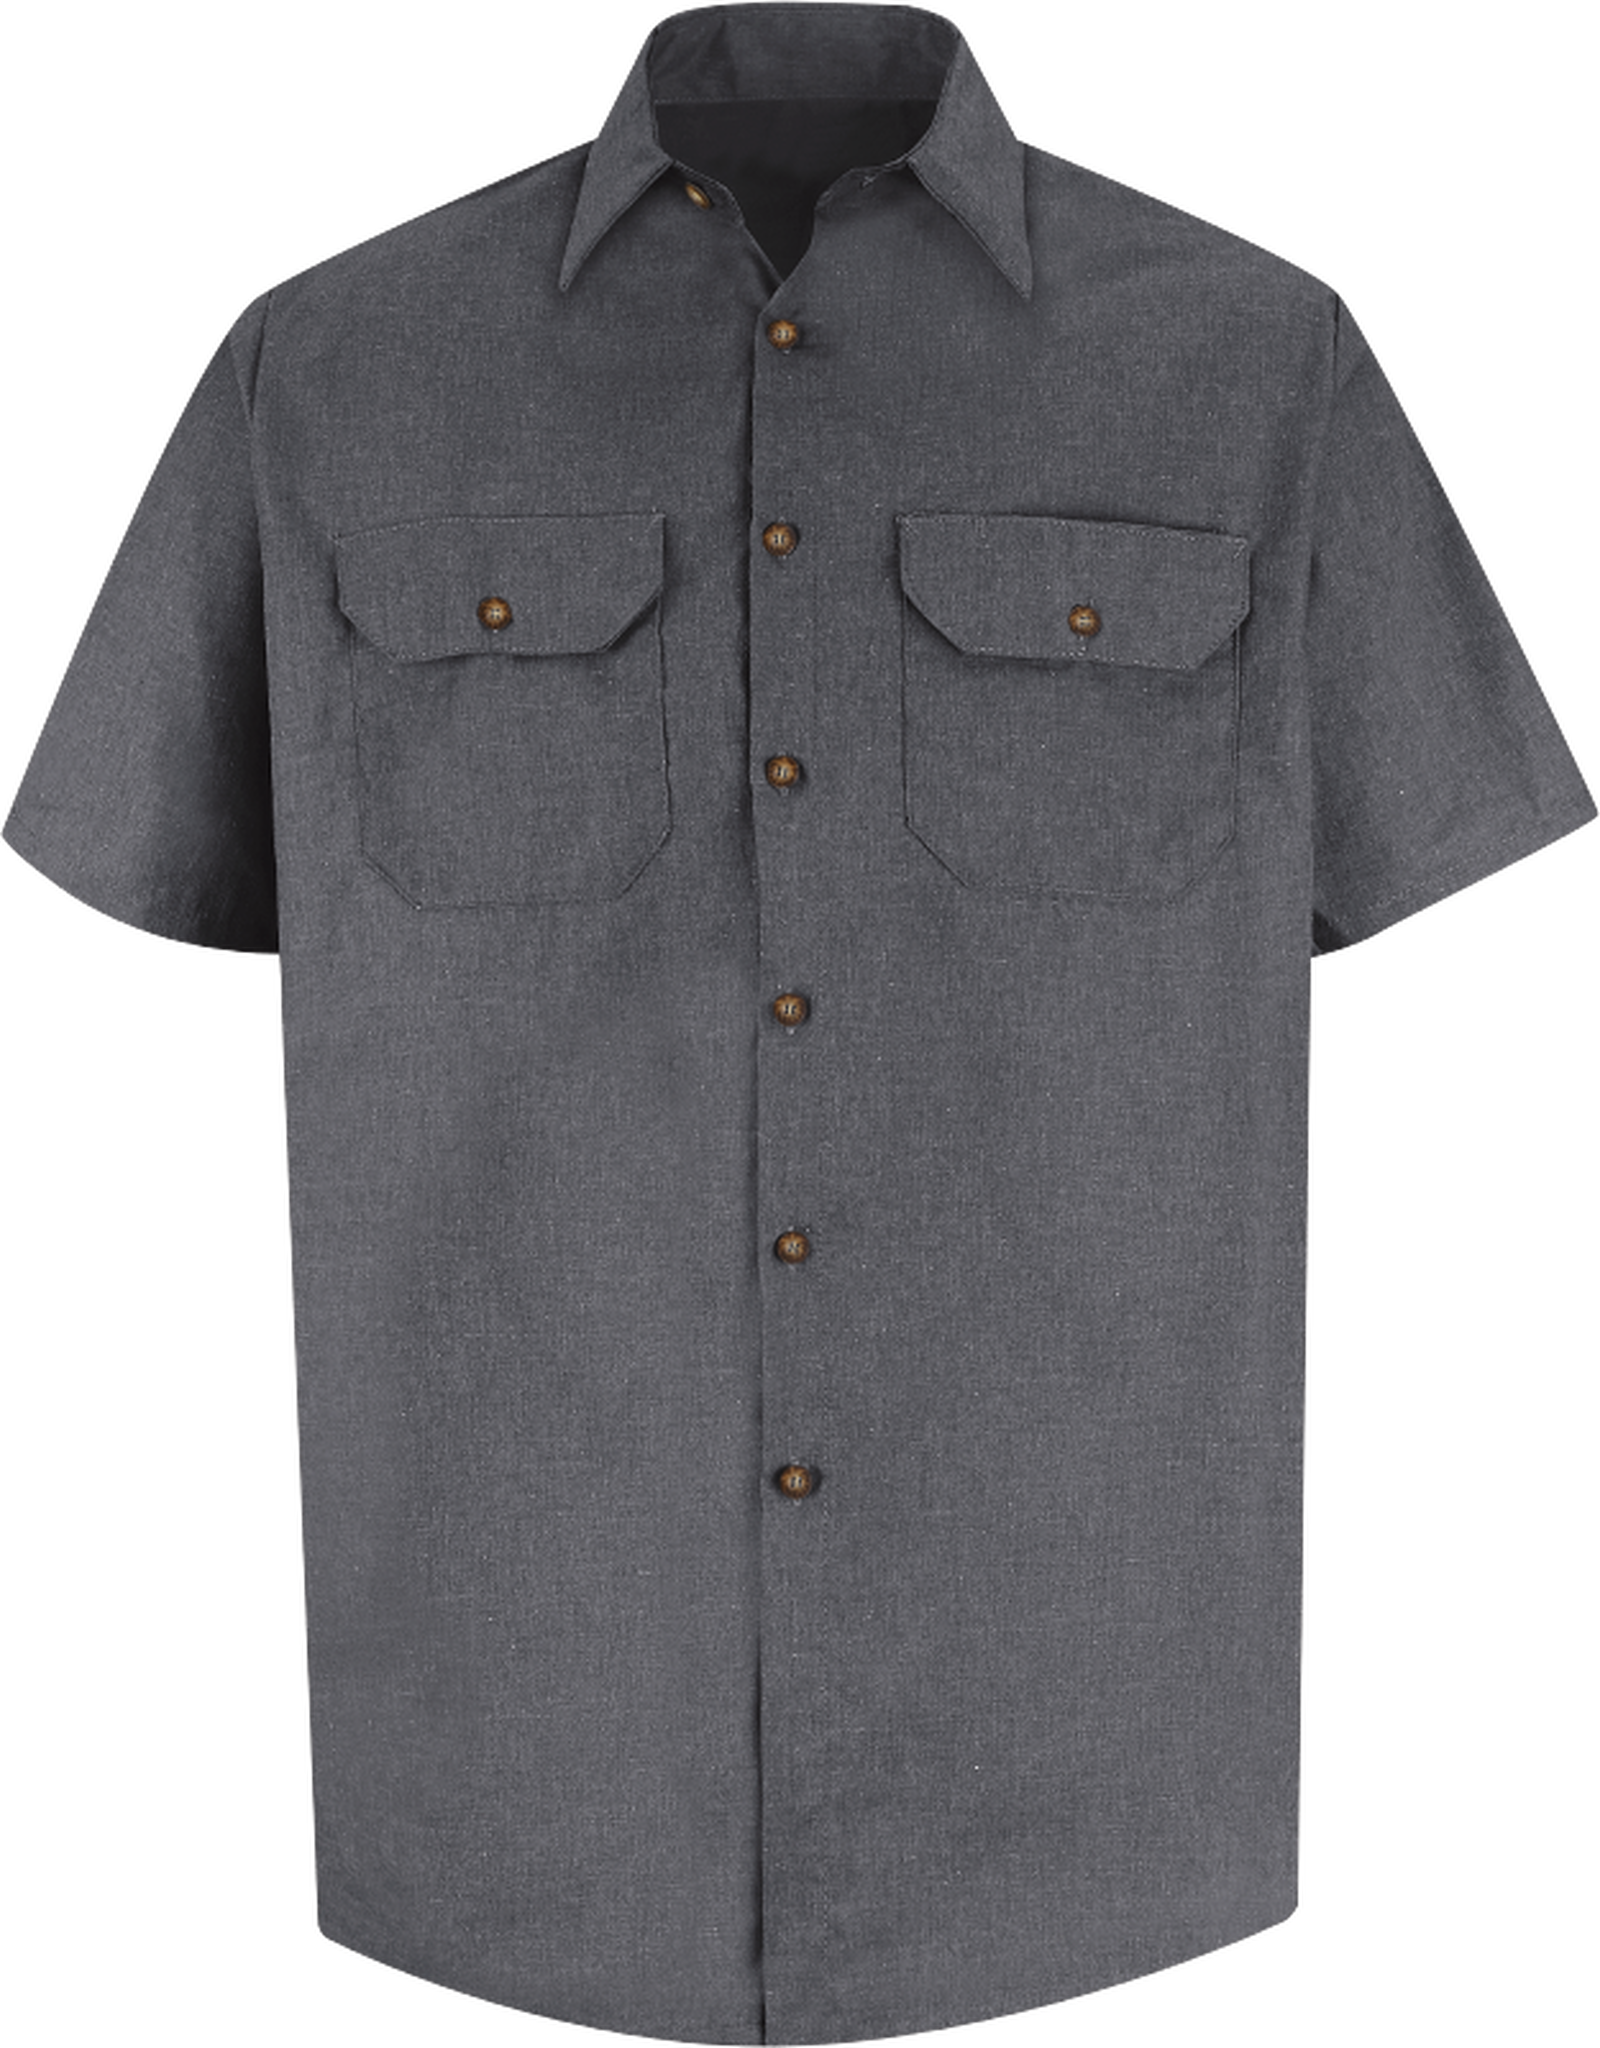 Men's Short Sleeve Heathered Poplin Uniform Shirt